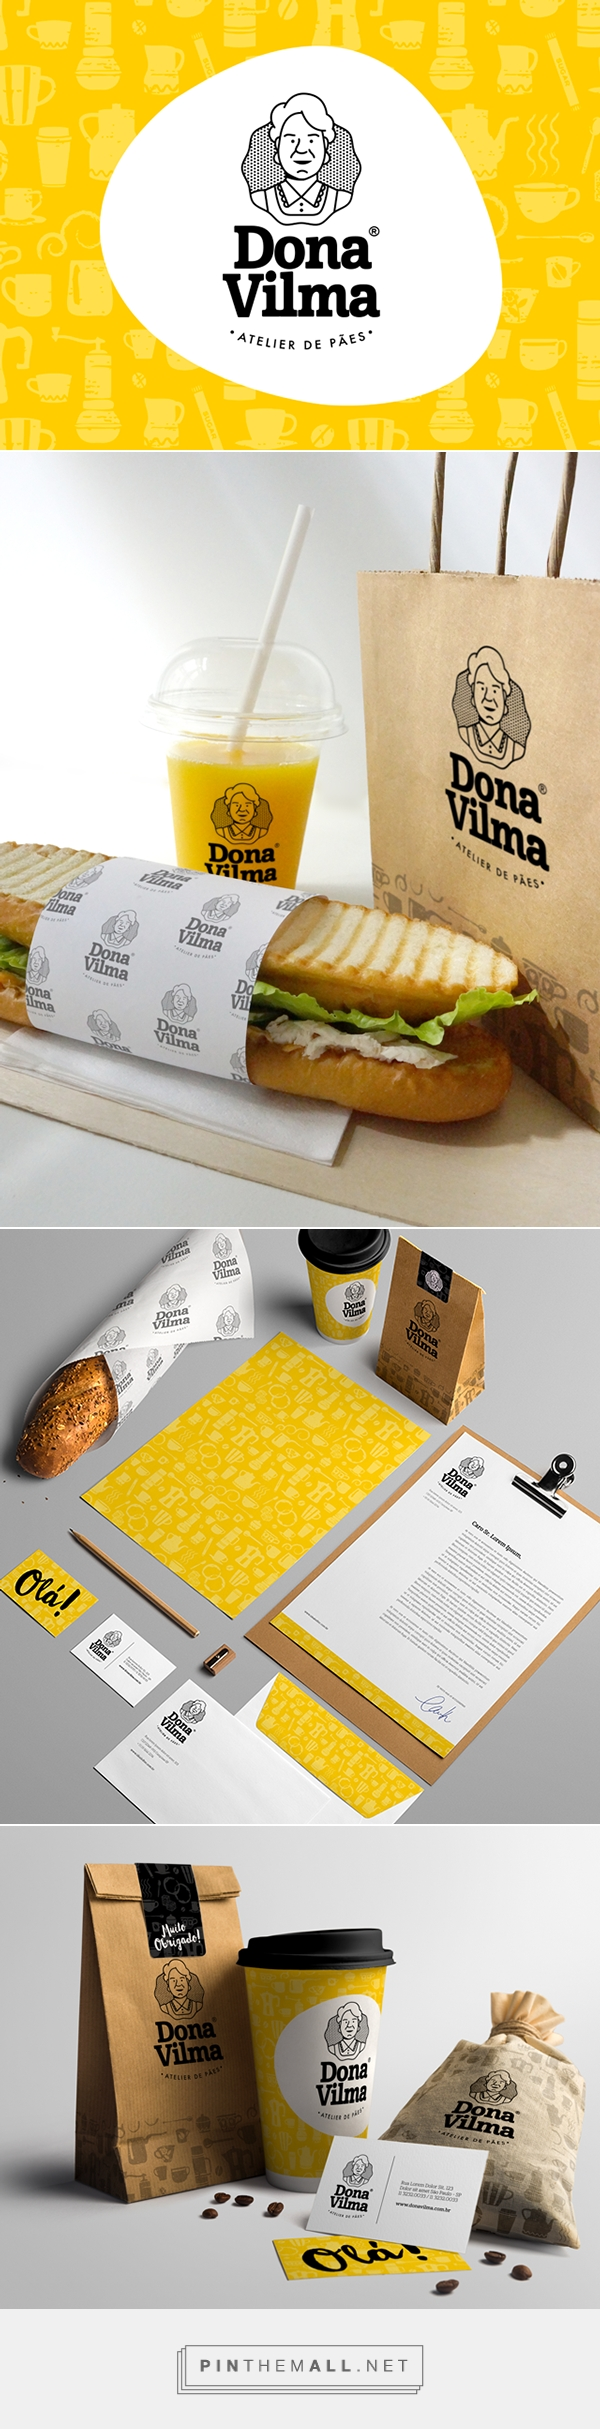 Visual identity Dona Vilma Bakery on Behance by Thiago Dias curated by Packaging Diva PD. It's time for lunch packaging.